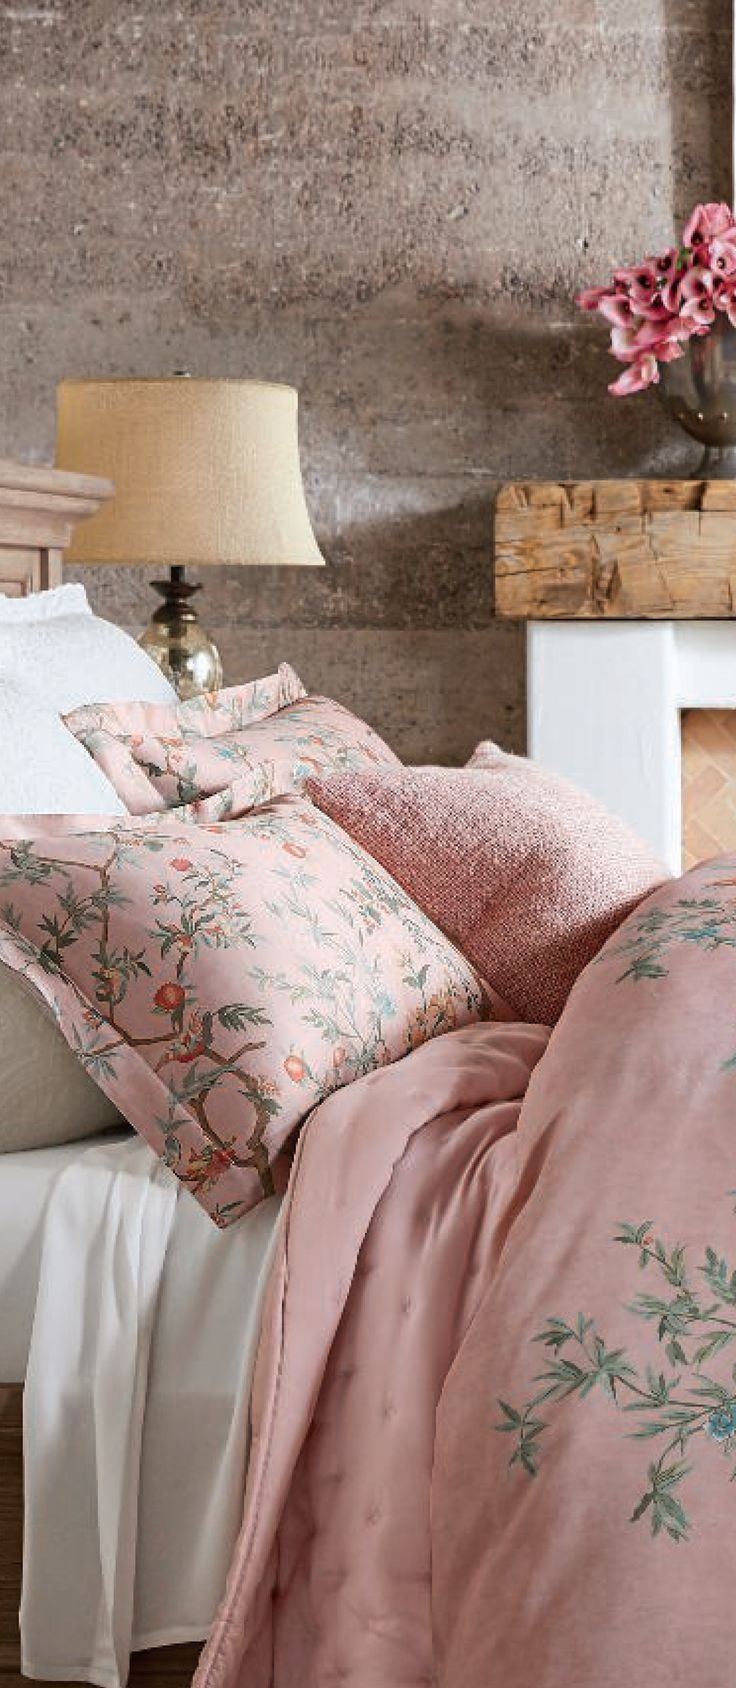 Love is in the air. Soften spaces with floral prints, muted hues and gorgeous fabrics | Artisinal Vintage Bedding